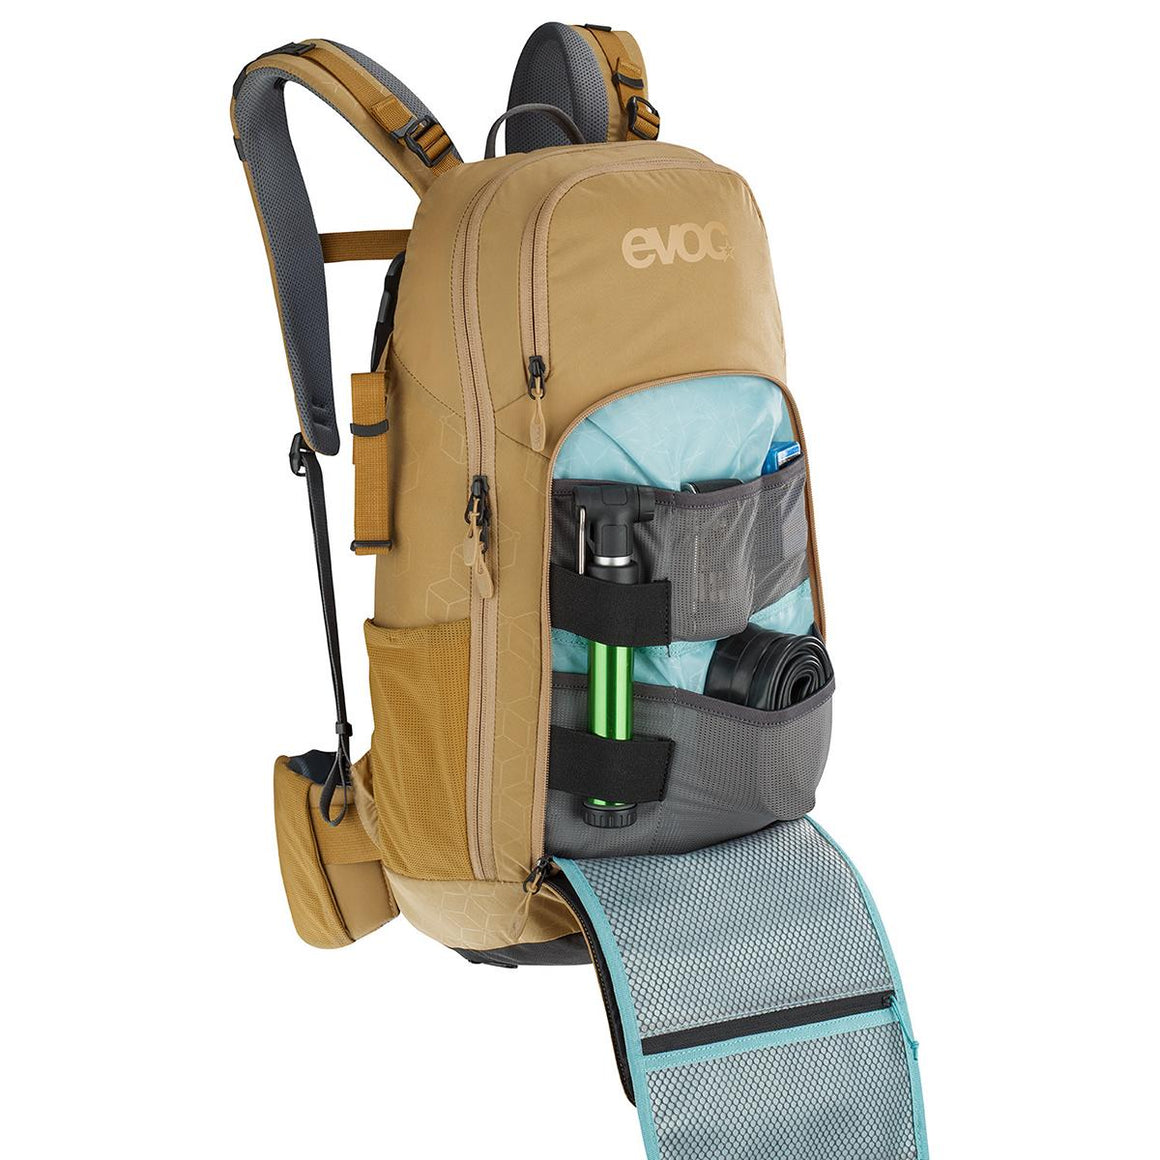 Evoc NEO 16l Backpack - GOLD - 2019